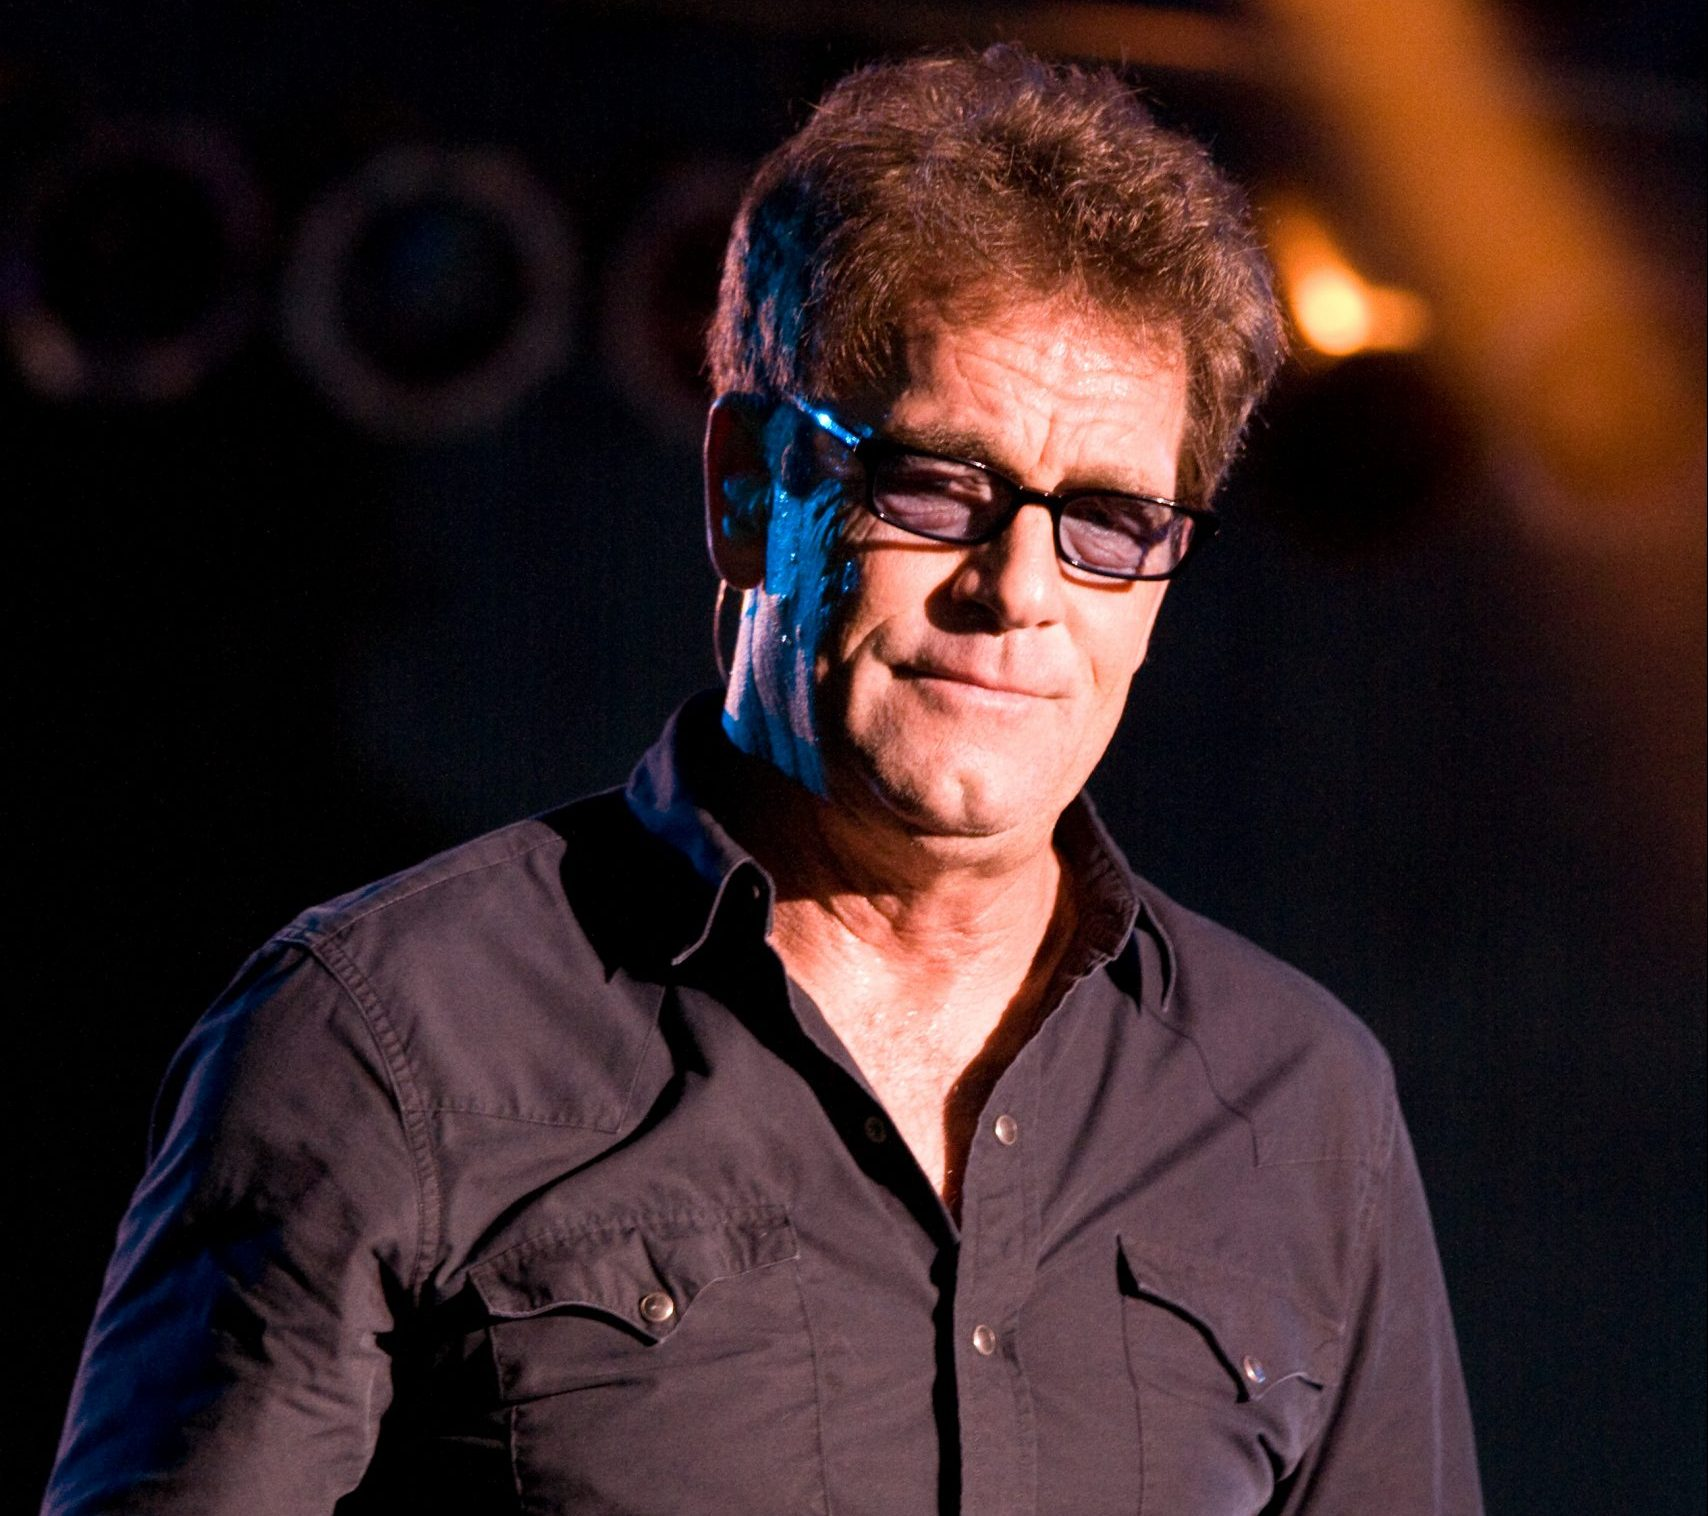 Huey Lewis 07 05 2009 scaled e1626163878993 20 Things You Might Not Have Known About Huey Lewis and the News